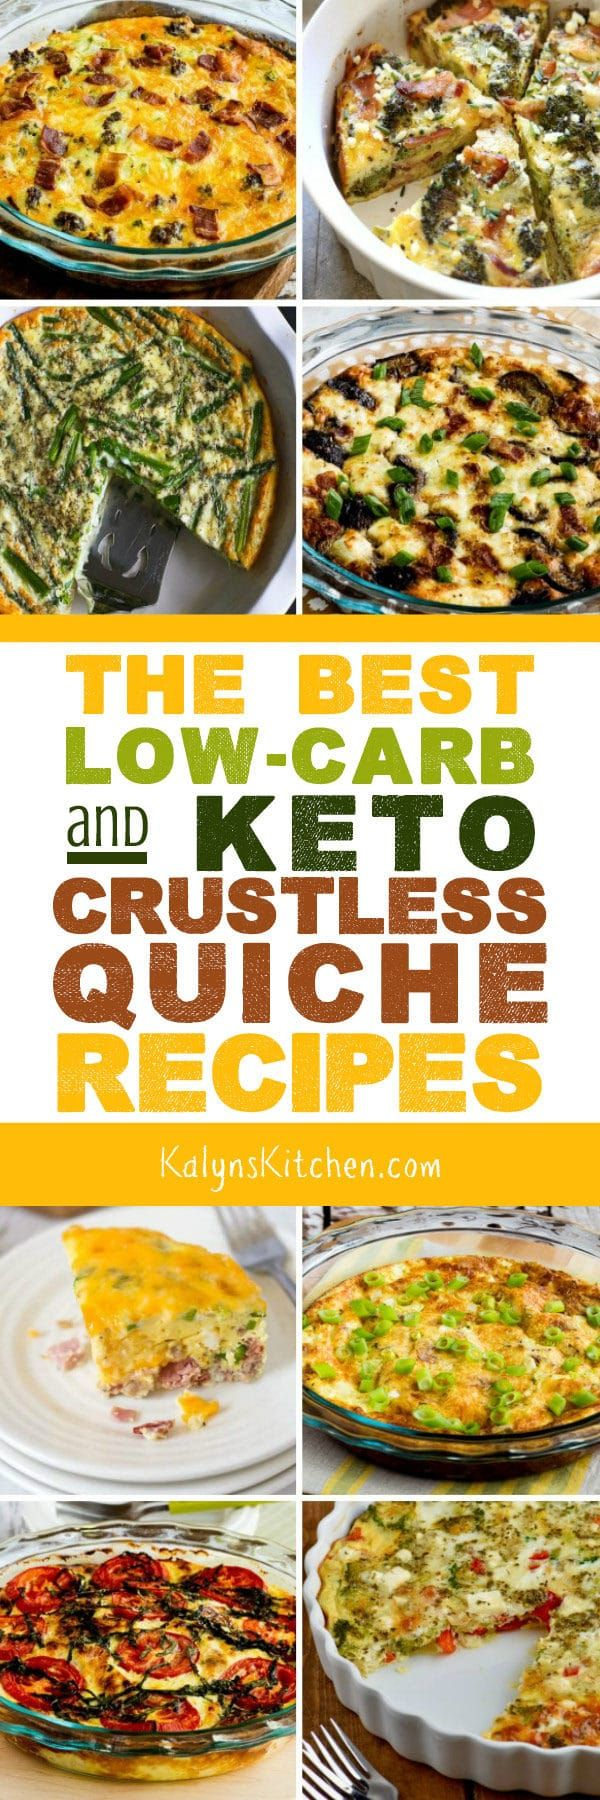 The BEST LowCarb and Keto Crustless Quiche Recipes